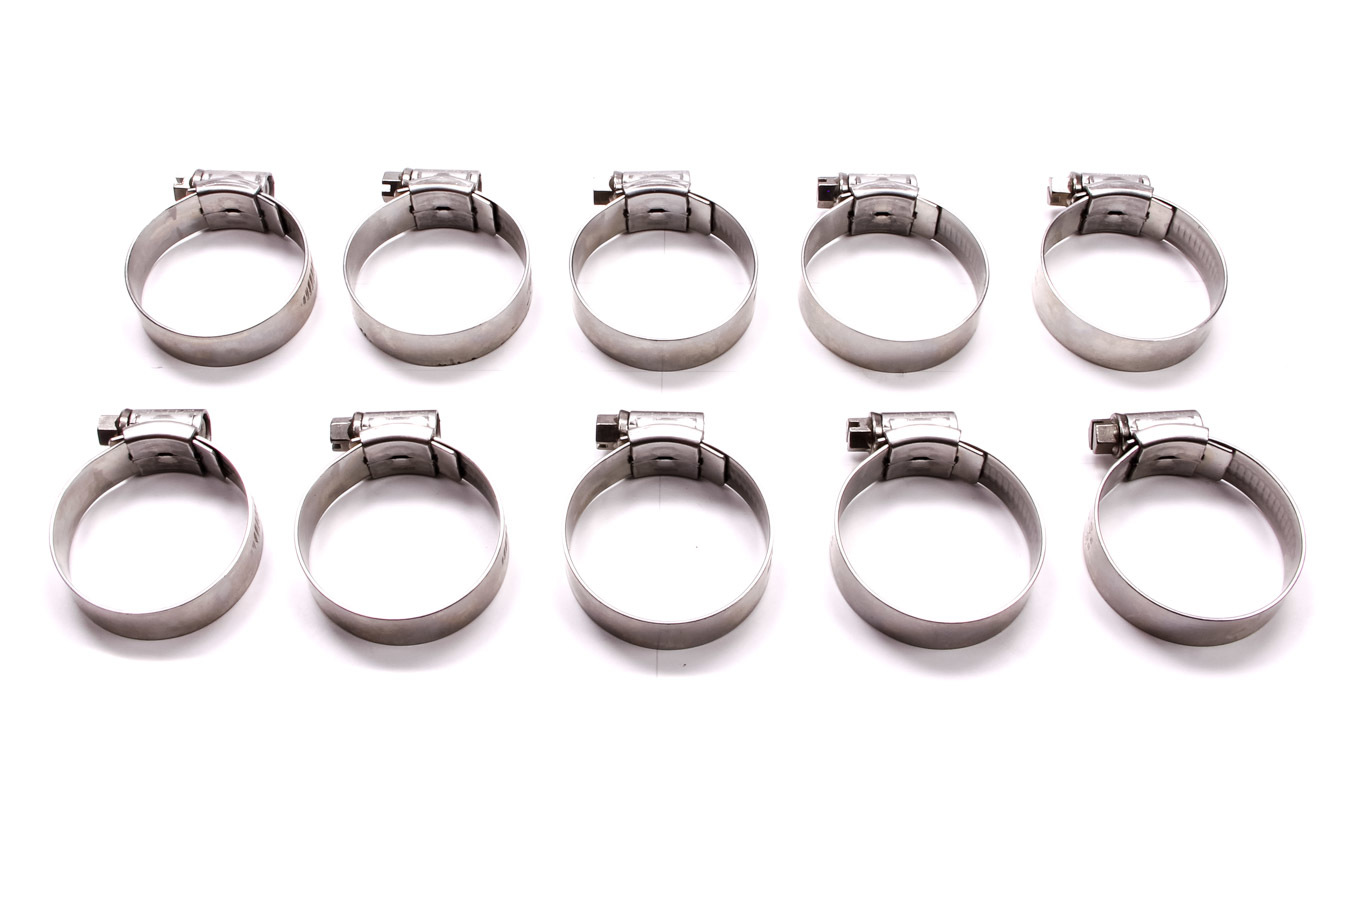 40mm-1-9/16in Hose Clamp 10pk